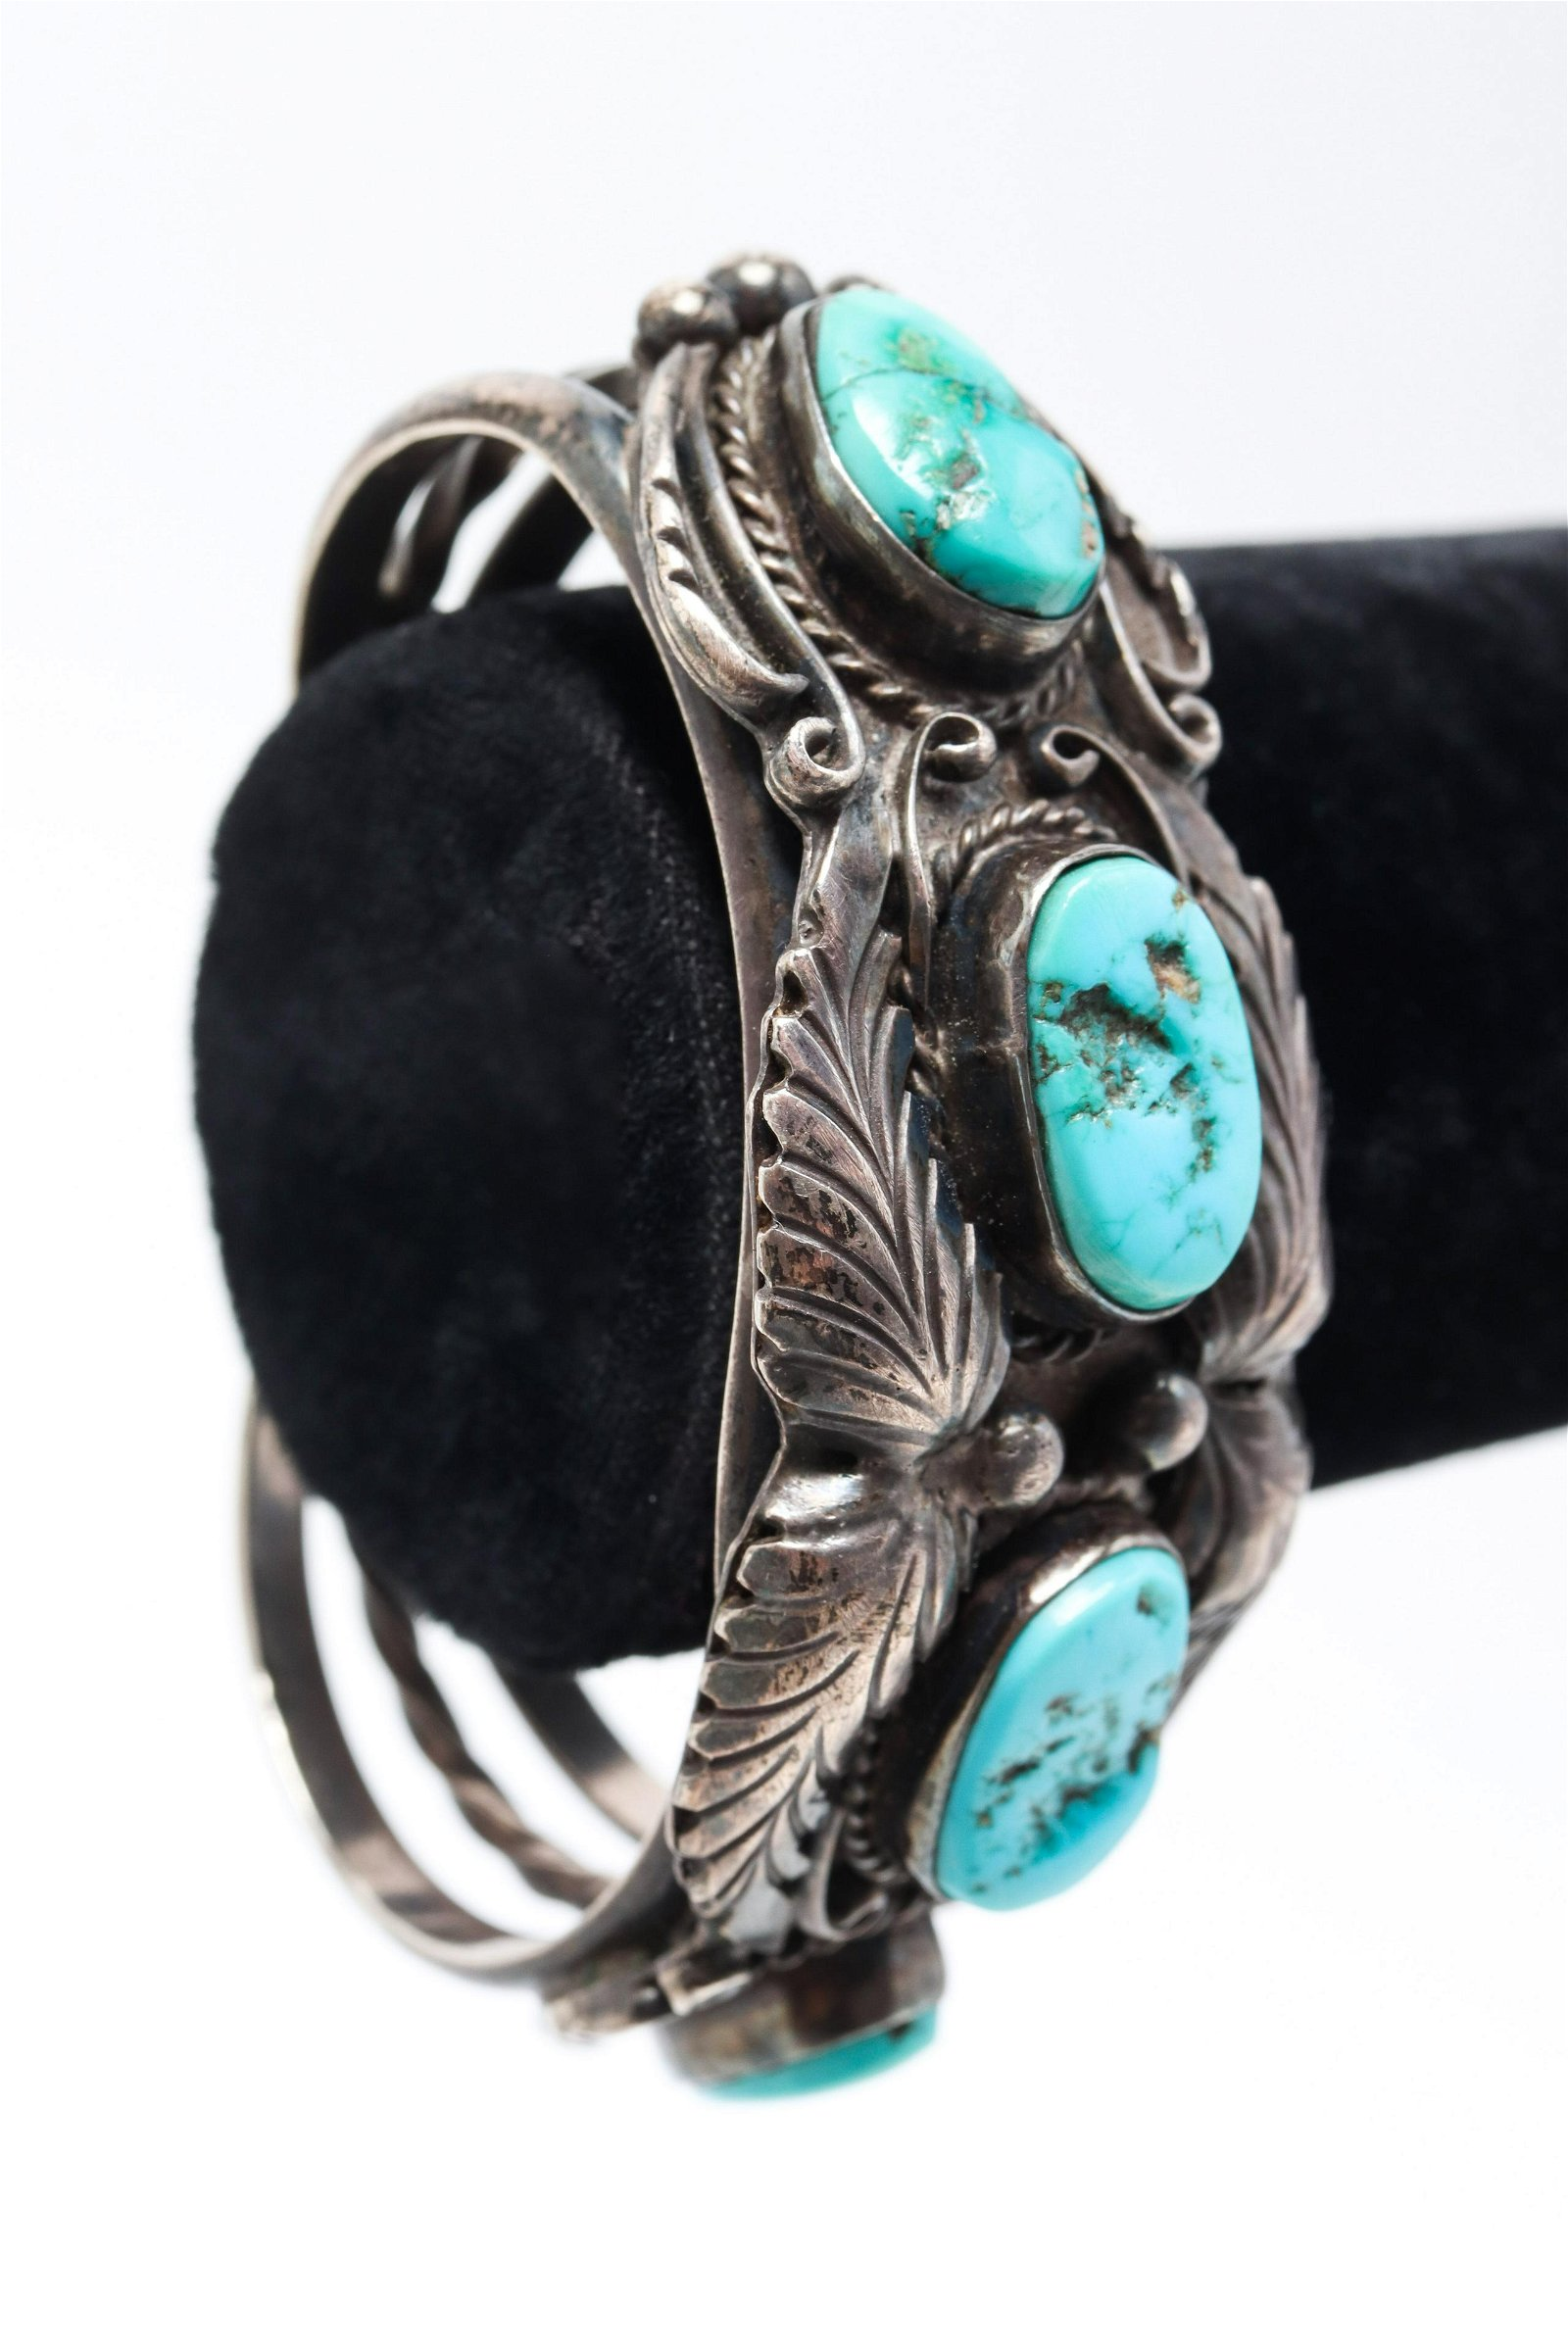 Southwest Navajo Indian Silver & Turquoise Cuff